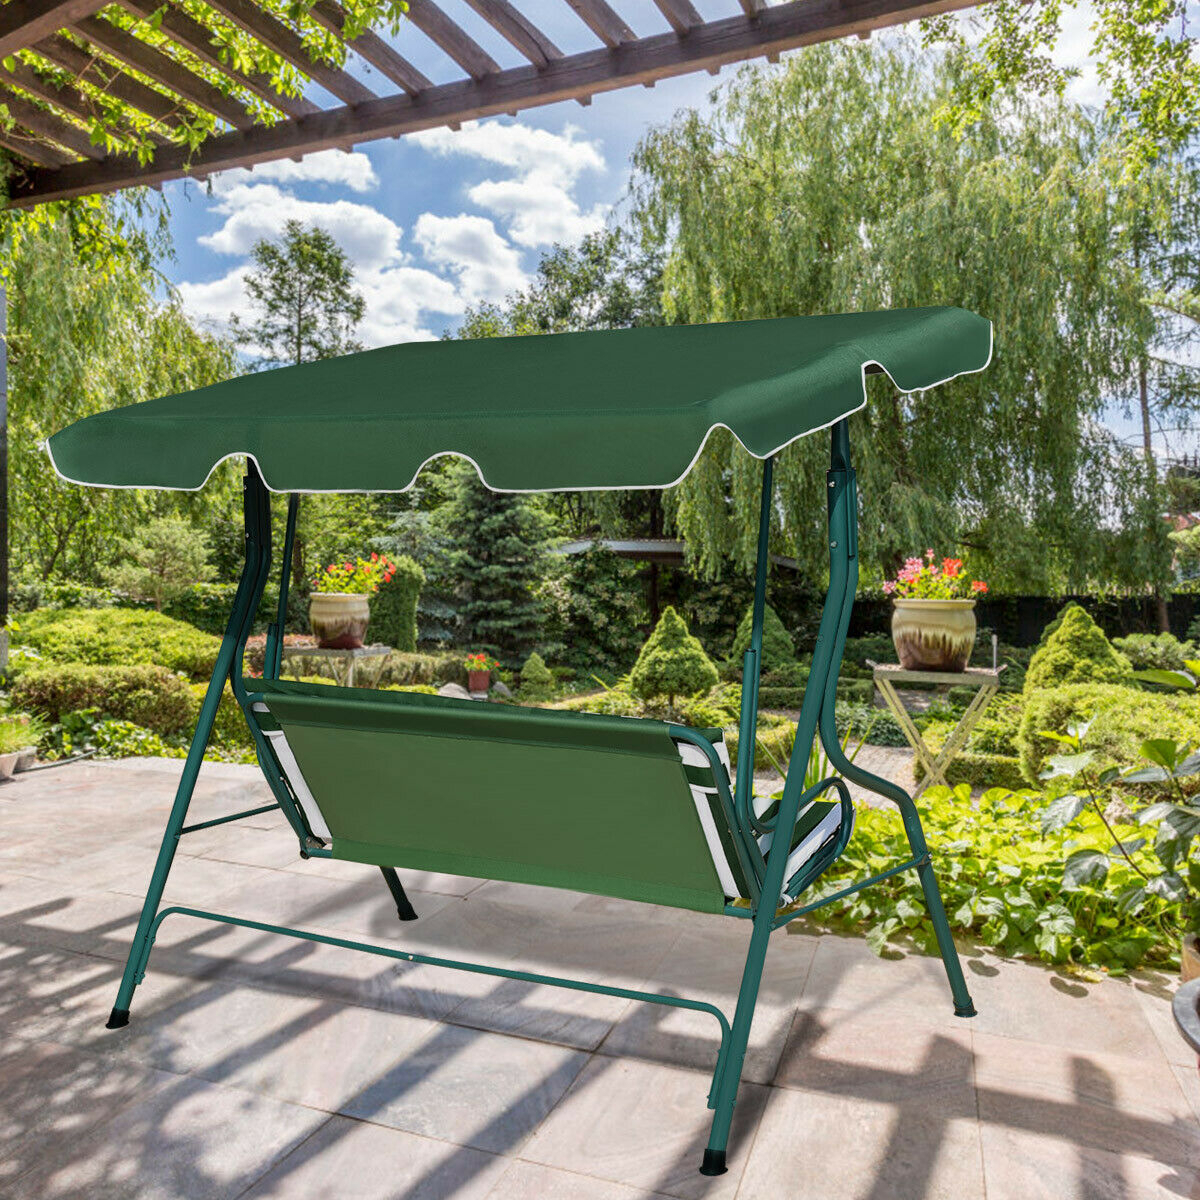 Costway 3 Seats Patio Canopy Swing Glider Hammock Cushioned Steel Frame  Backyar Green Within 3 Seats Patio Canopy Swing Gliders Hammock Cushioned Steel Frame (Image 12 of 25)